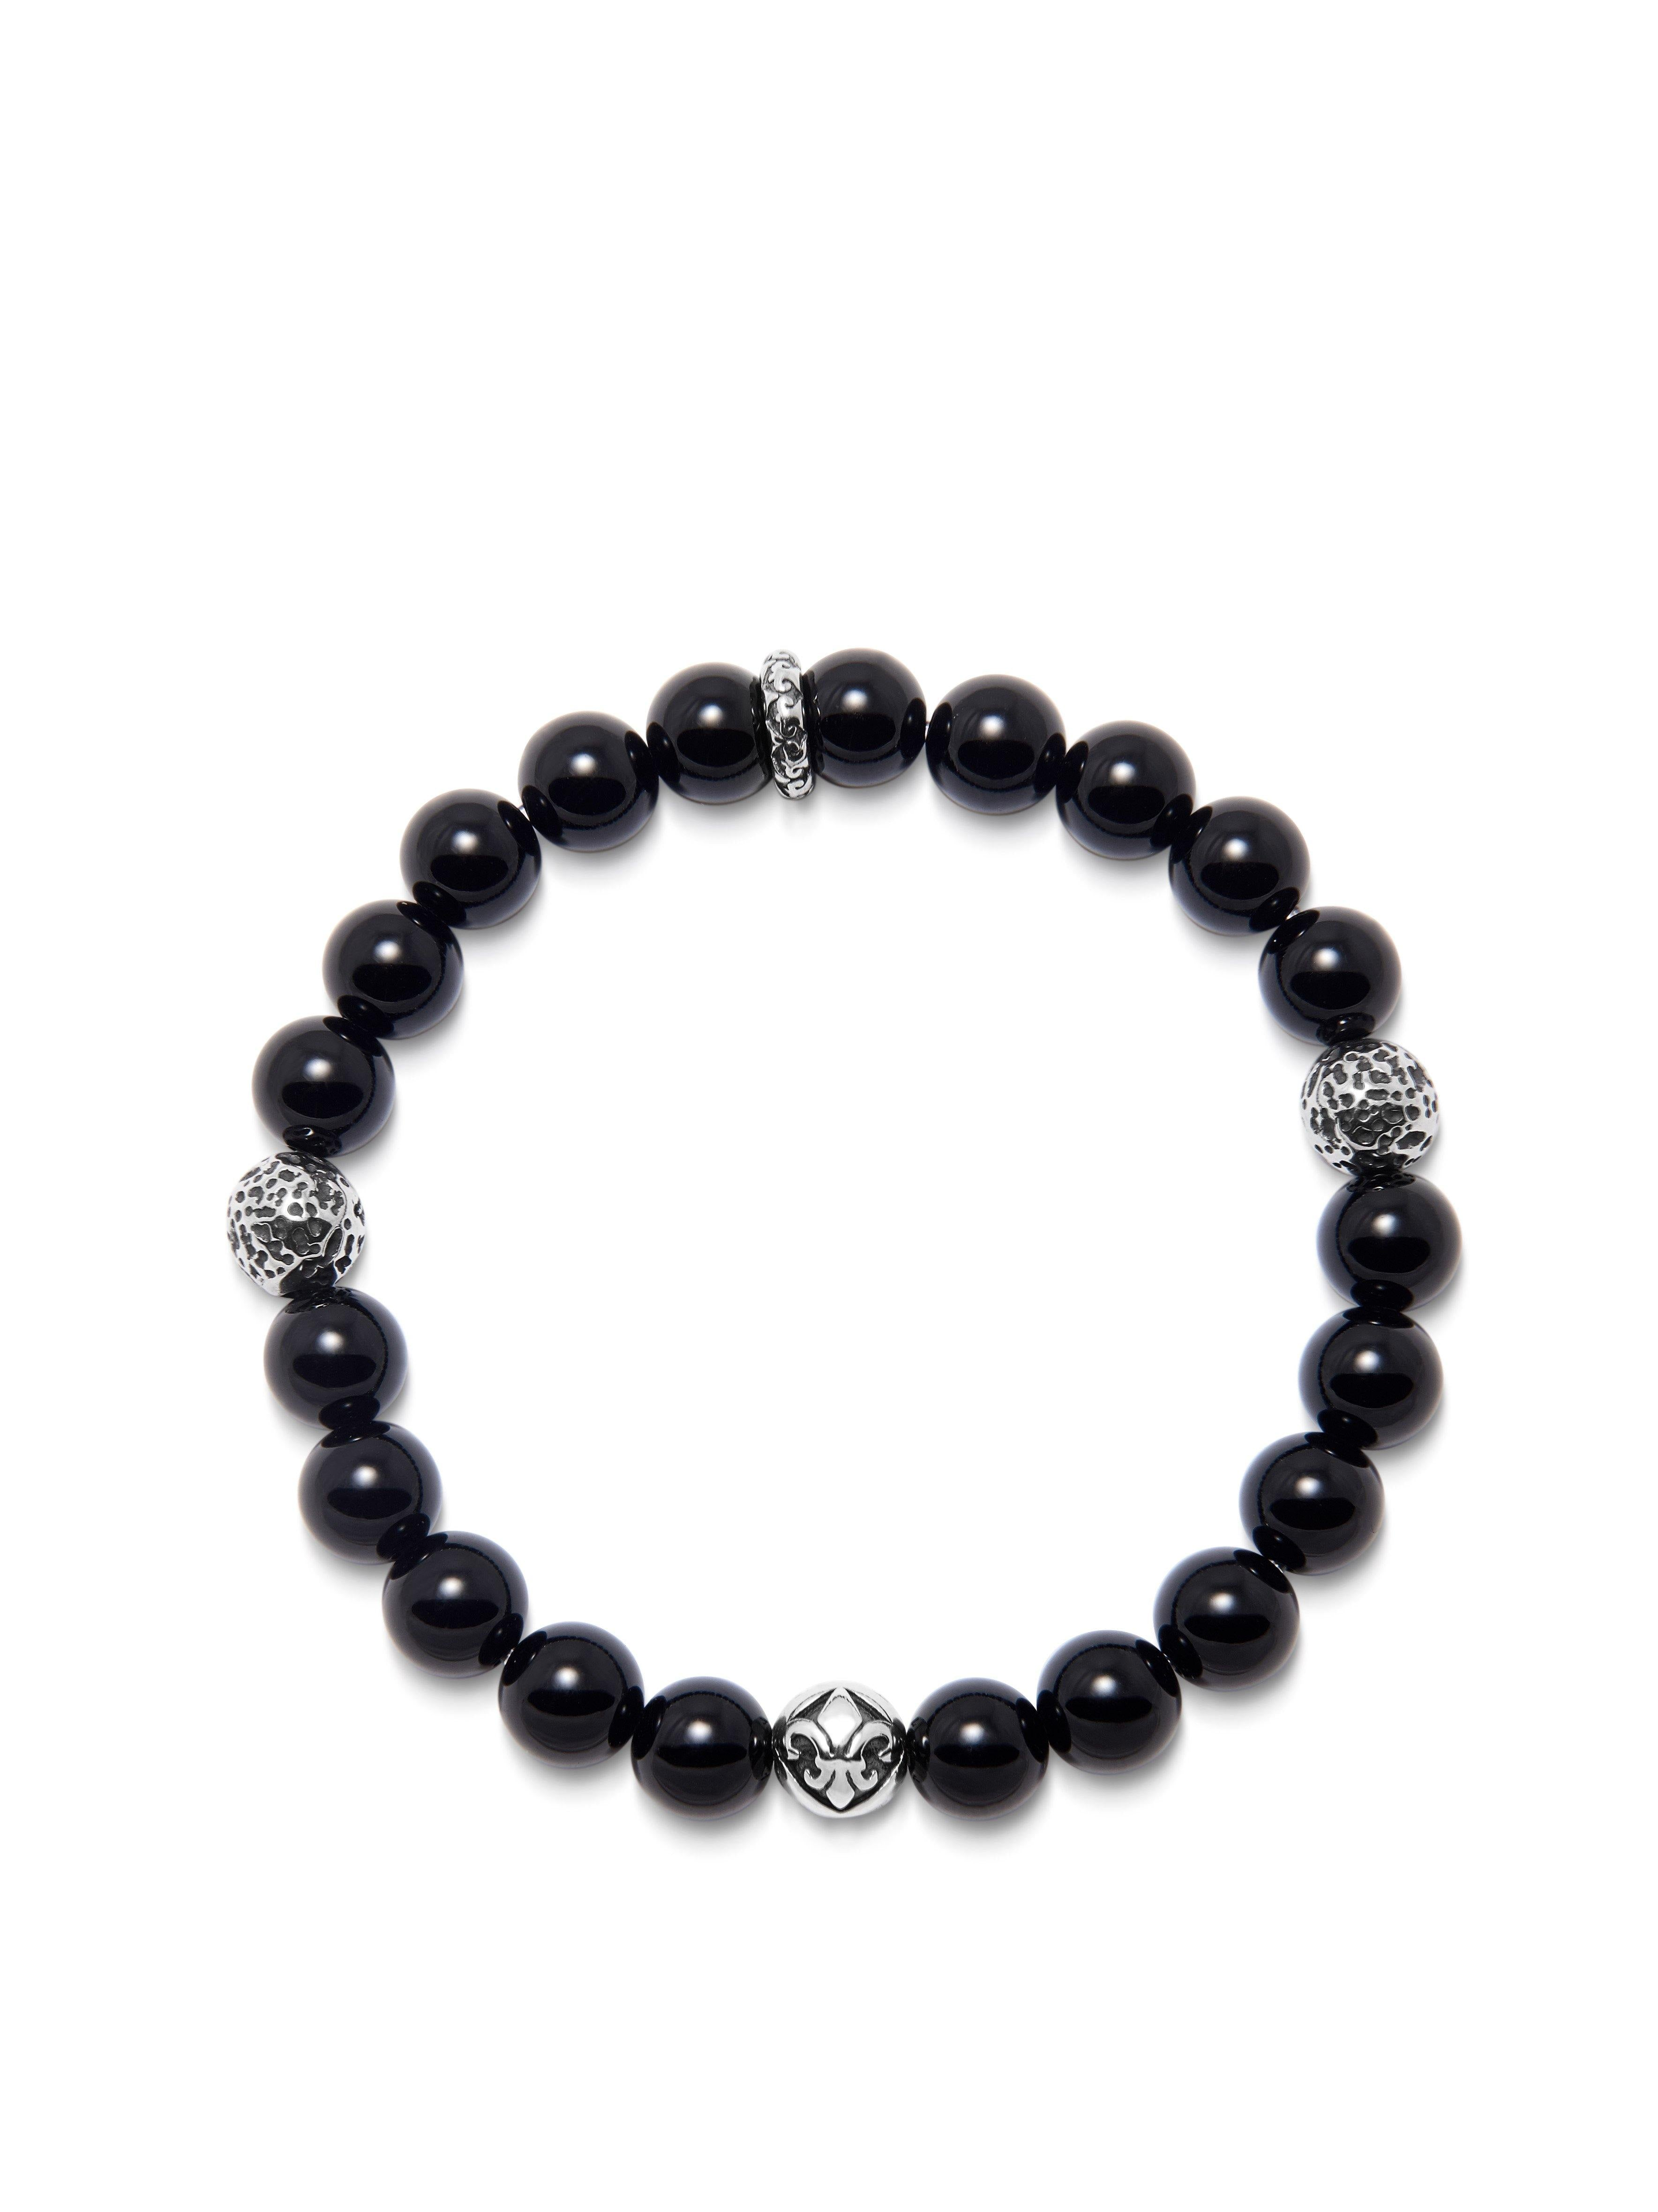 Men's Wristband with Black Agate and Silver